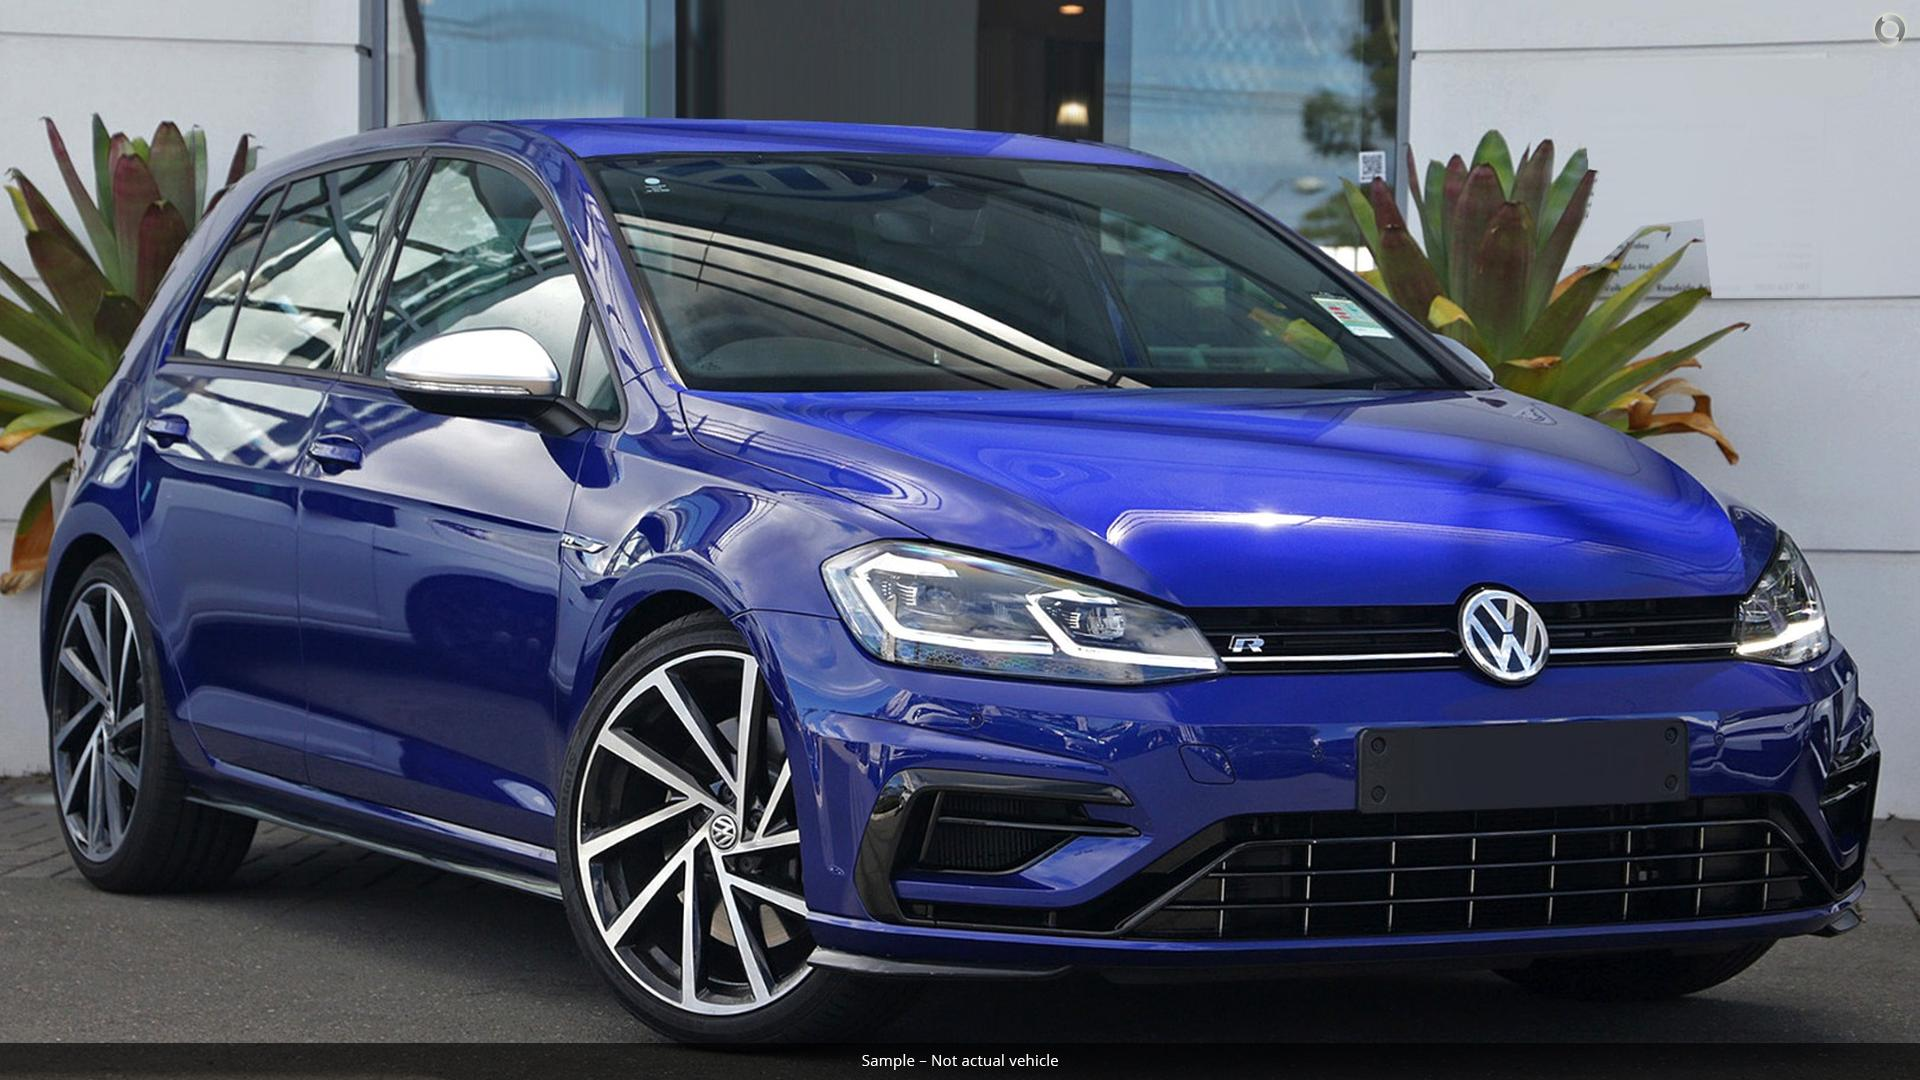 2019 Volkswagen Golf 7.5